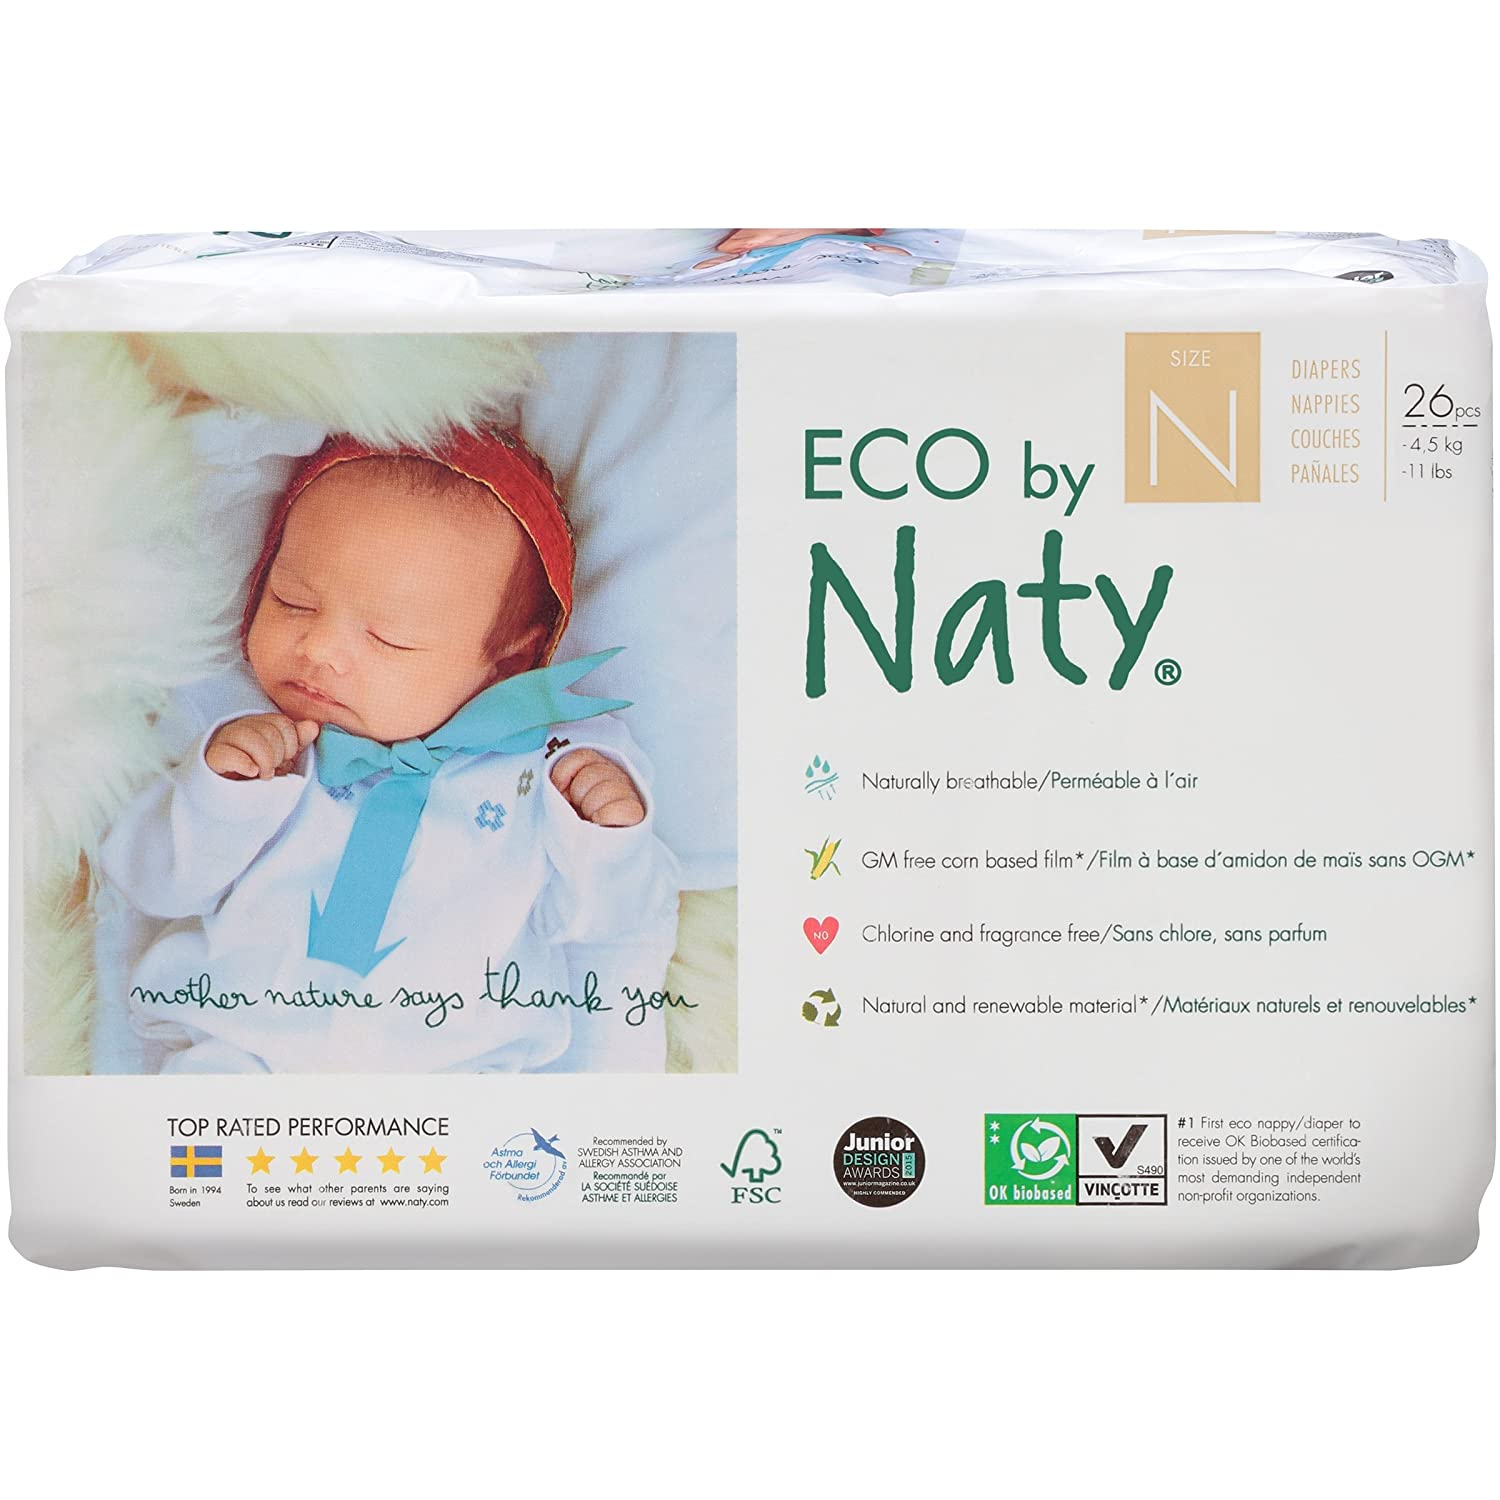 Amazon.com: Branded Naty, ECO By Naty Diapers, Newborn, 26 Diapers , - Branded Diapers with fast delivery (Soft and Comfortable for Babies): Health ...